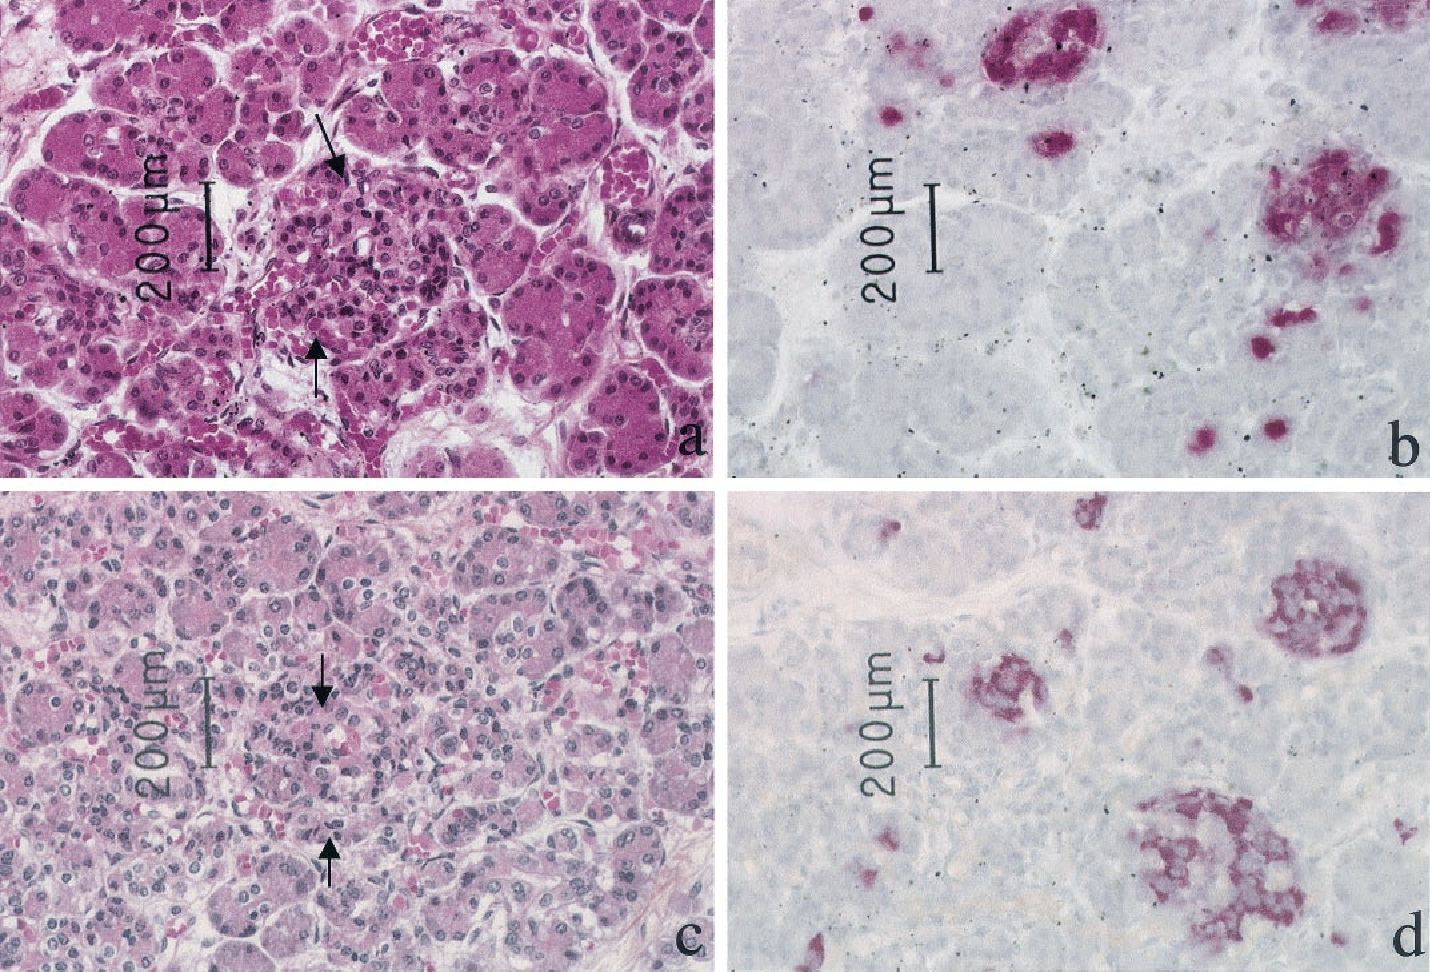 FIG. 2. Histological examination of pancreases from a control (a) and an IUGR fetus (c) showing a normal architecture, with preserved exocrine and endocrine structures (between arrows). Insulin was detected by immunohistochemistry (red color) in pancreases from a control (b) and an IUGR fetus (d).